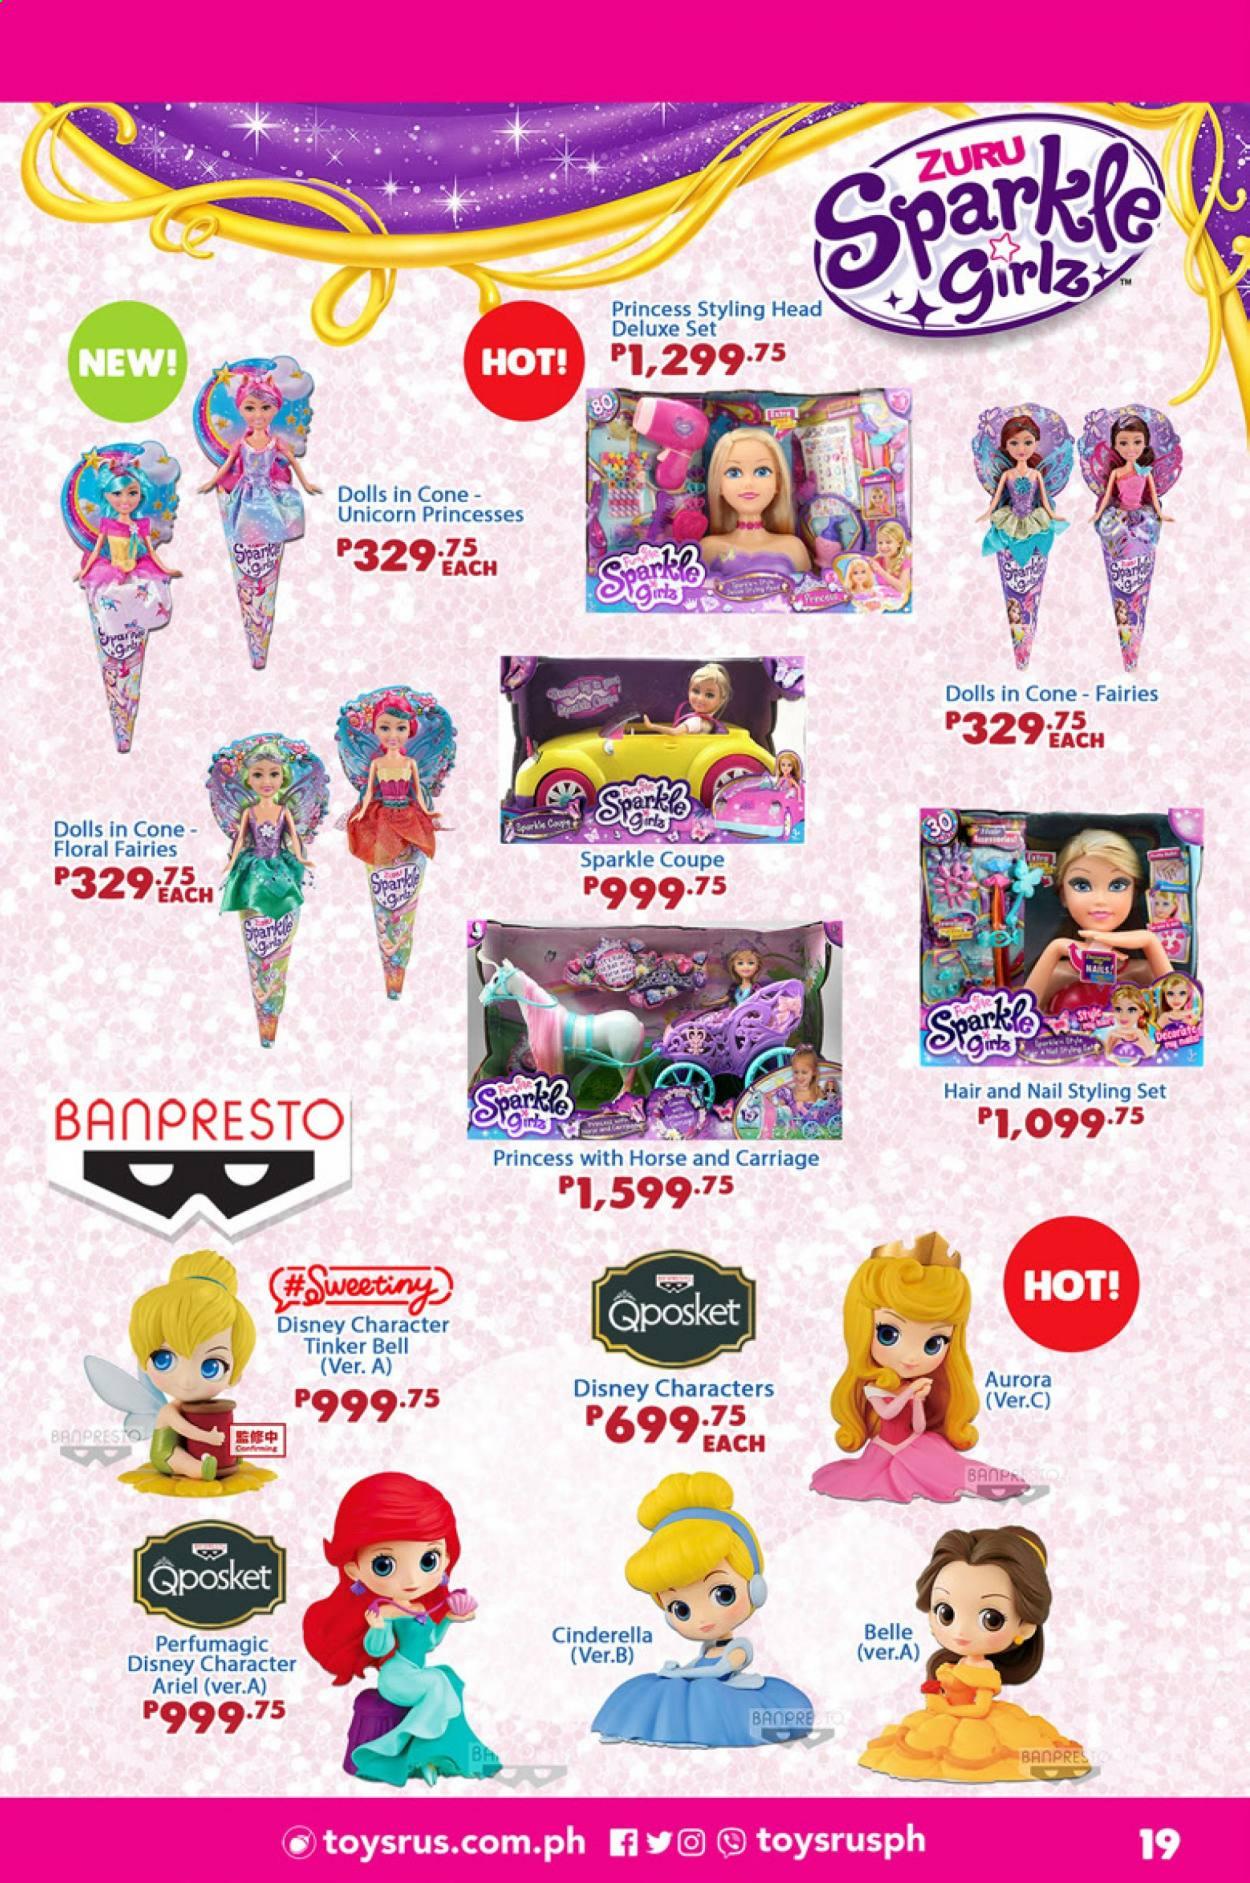 "Toys""R""Us offer  - 1.9.2020 - 30.9.2020 - Sales products - Disney, doll, styling head, Zuru, princess. Page 19."